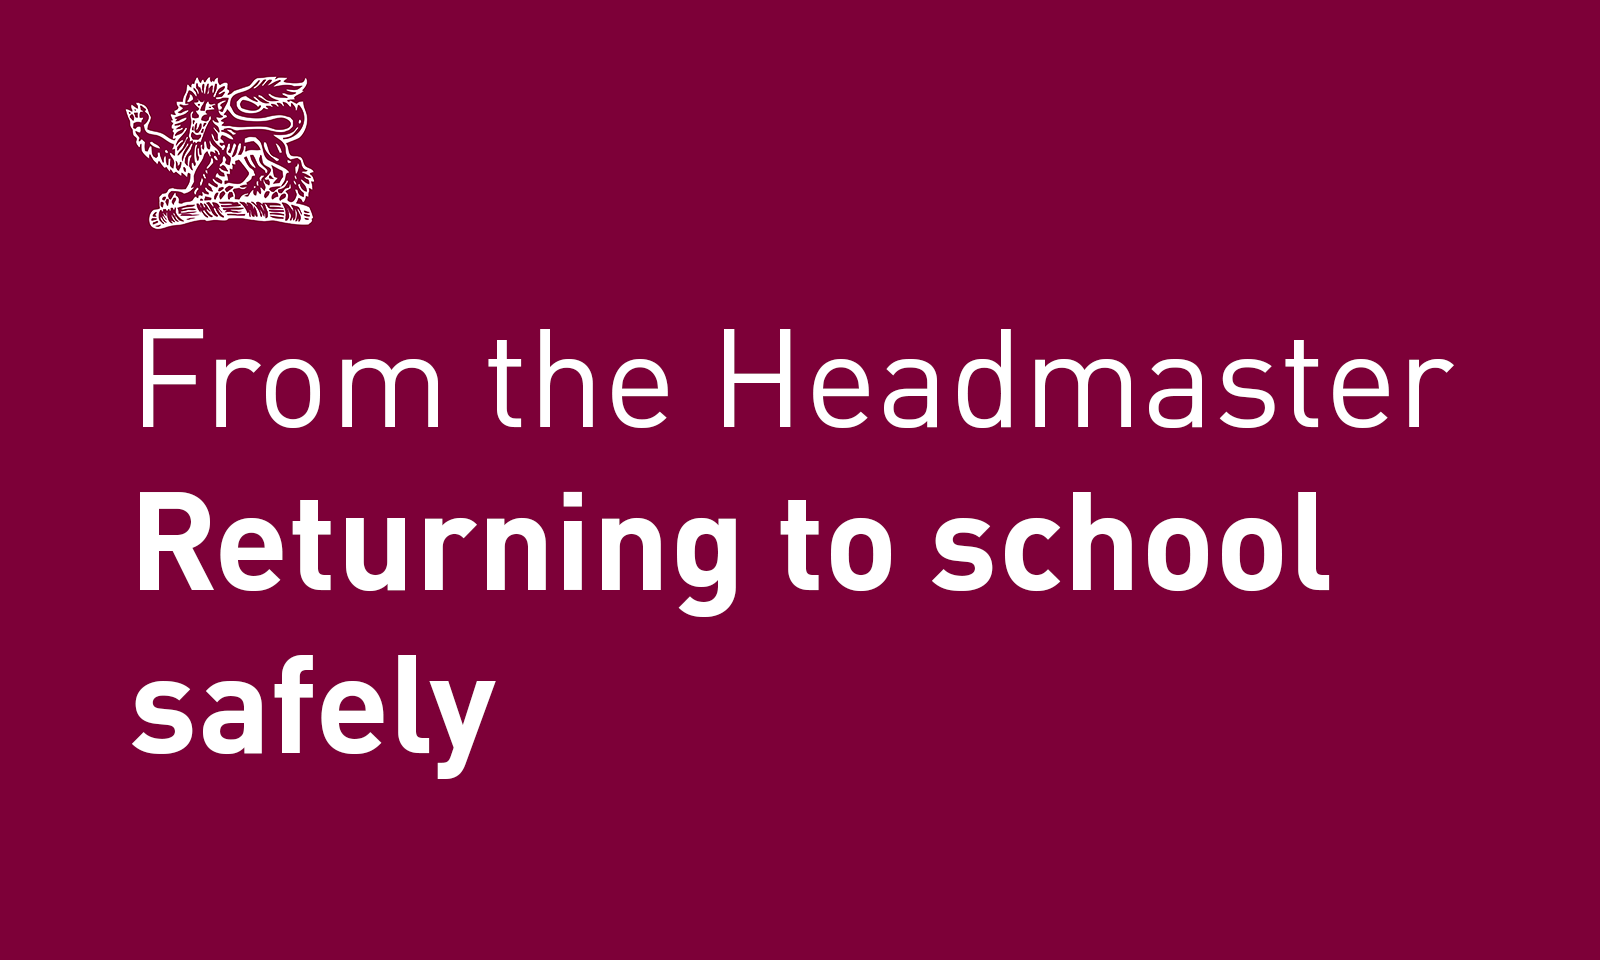 From the Headmaster – Returning to school safely